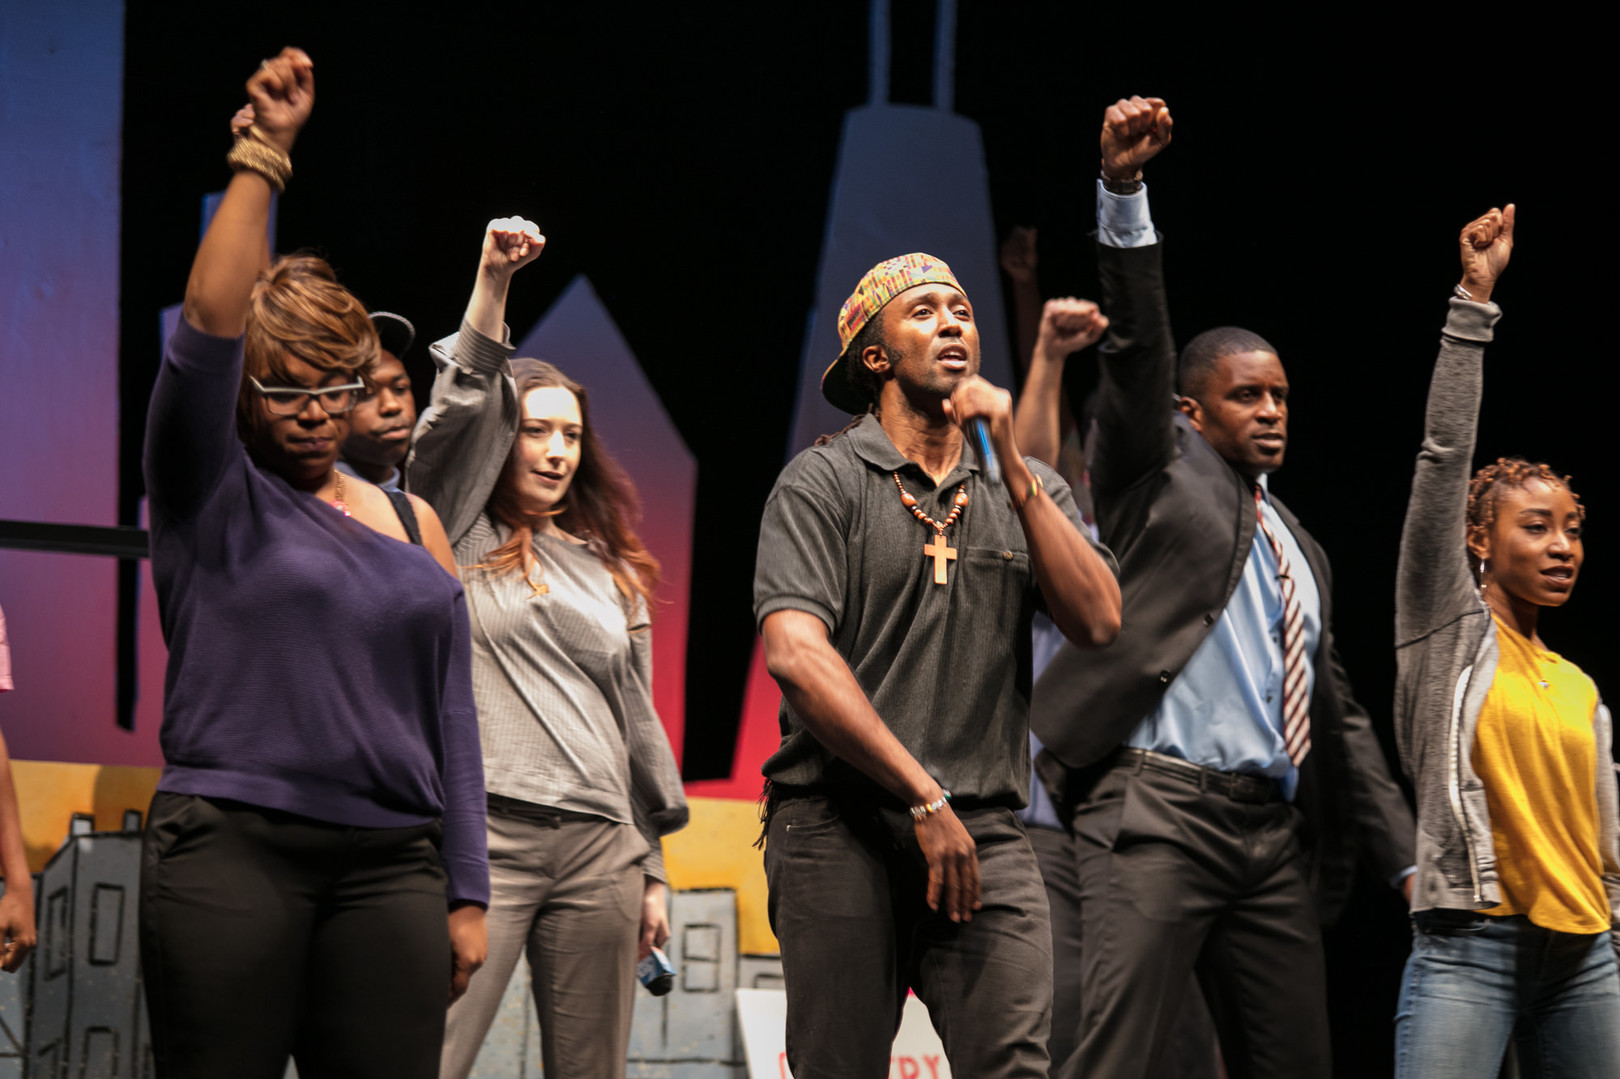 Jeremy Noah and the Cast of #Hashtag Who's Next The Musical (Photo credit:Joel Maisonet)